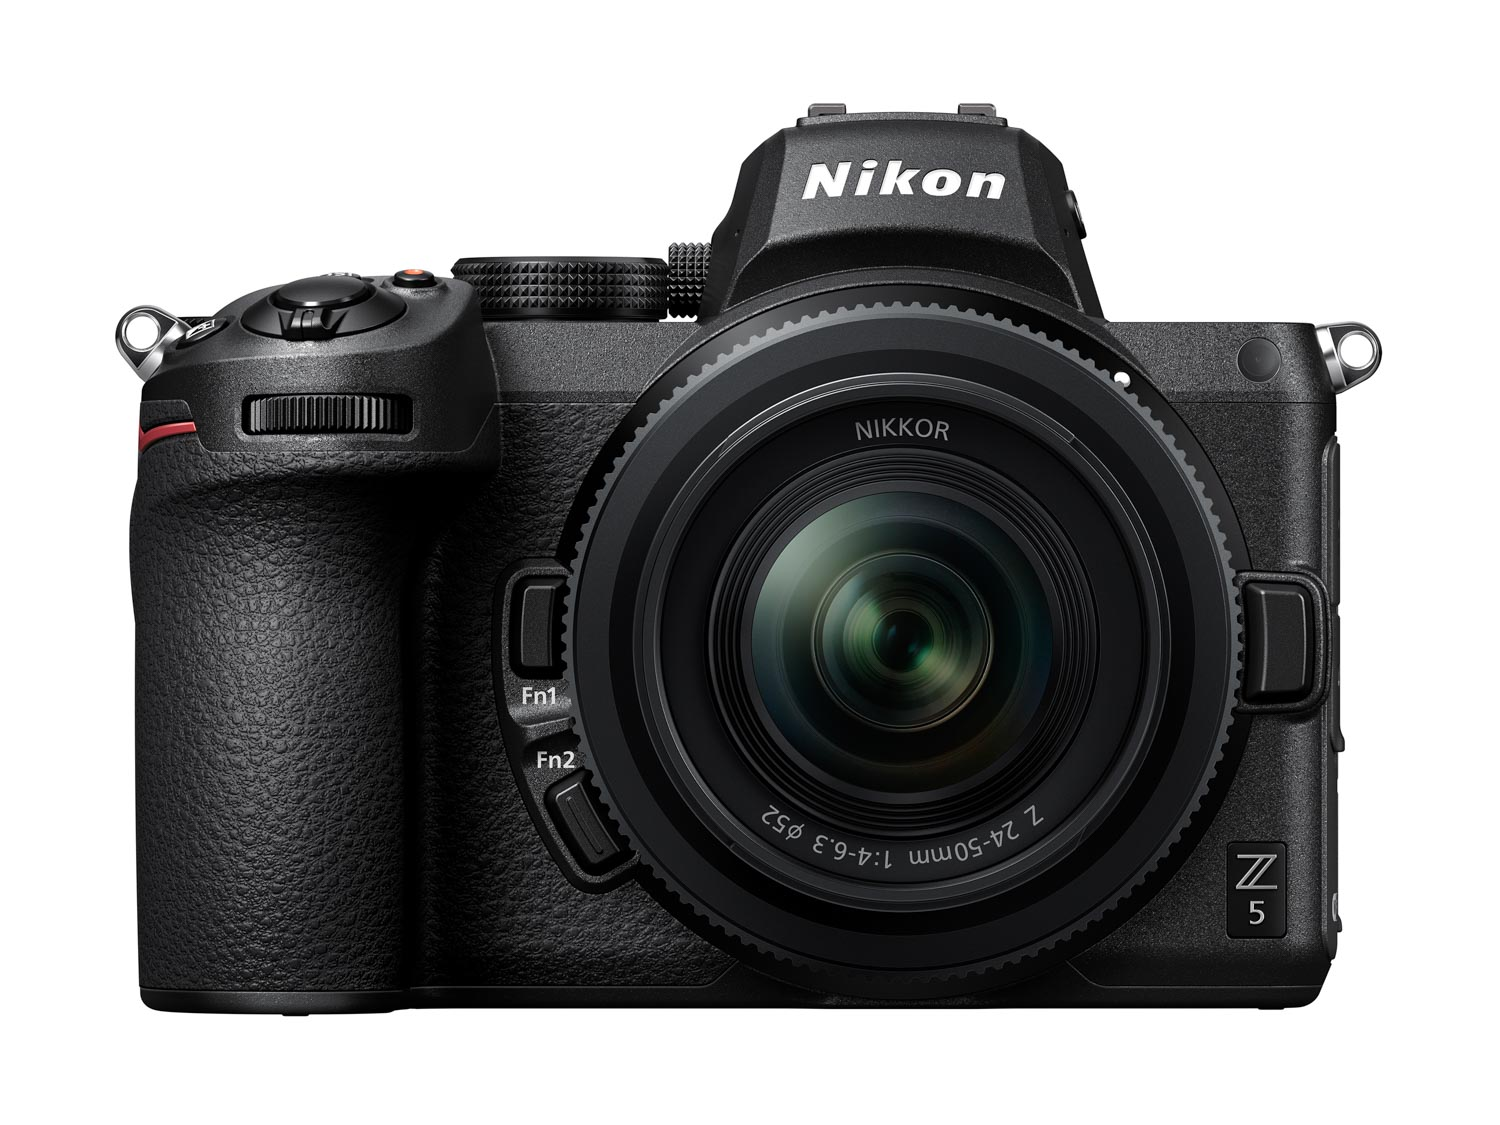 https://i0.wp.com/digital-photography-school.com/wp-content/uploads/2020/07/Nikon-Z5-announcement-1.jpg?ssl=1